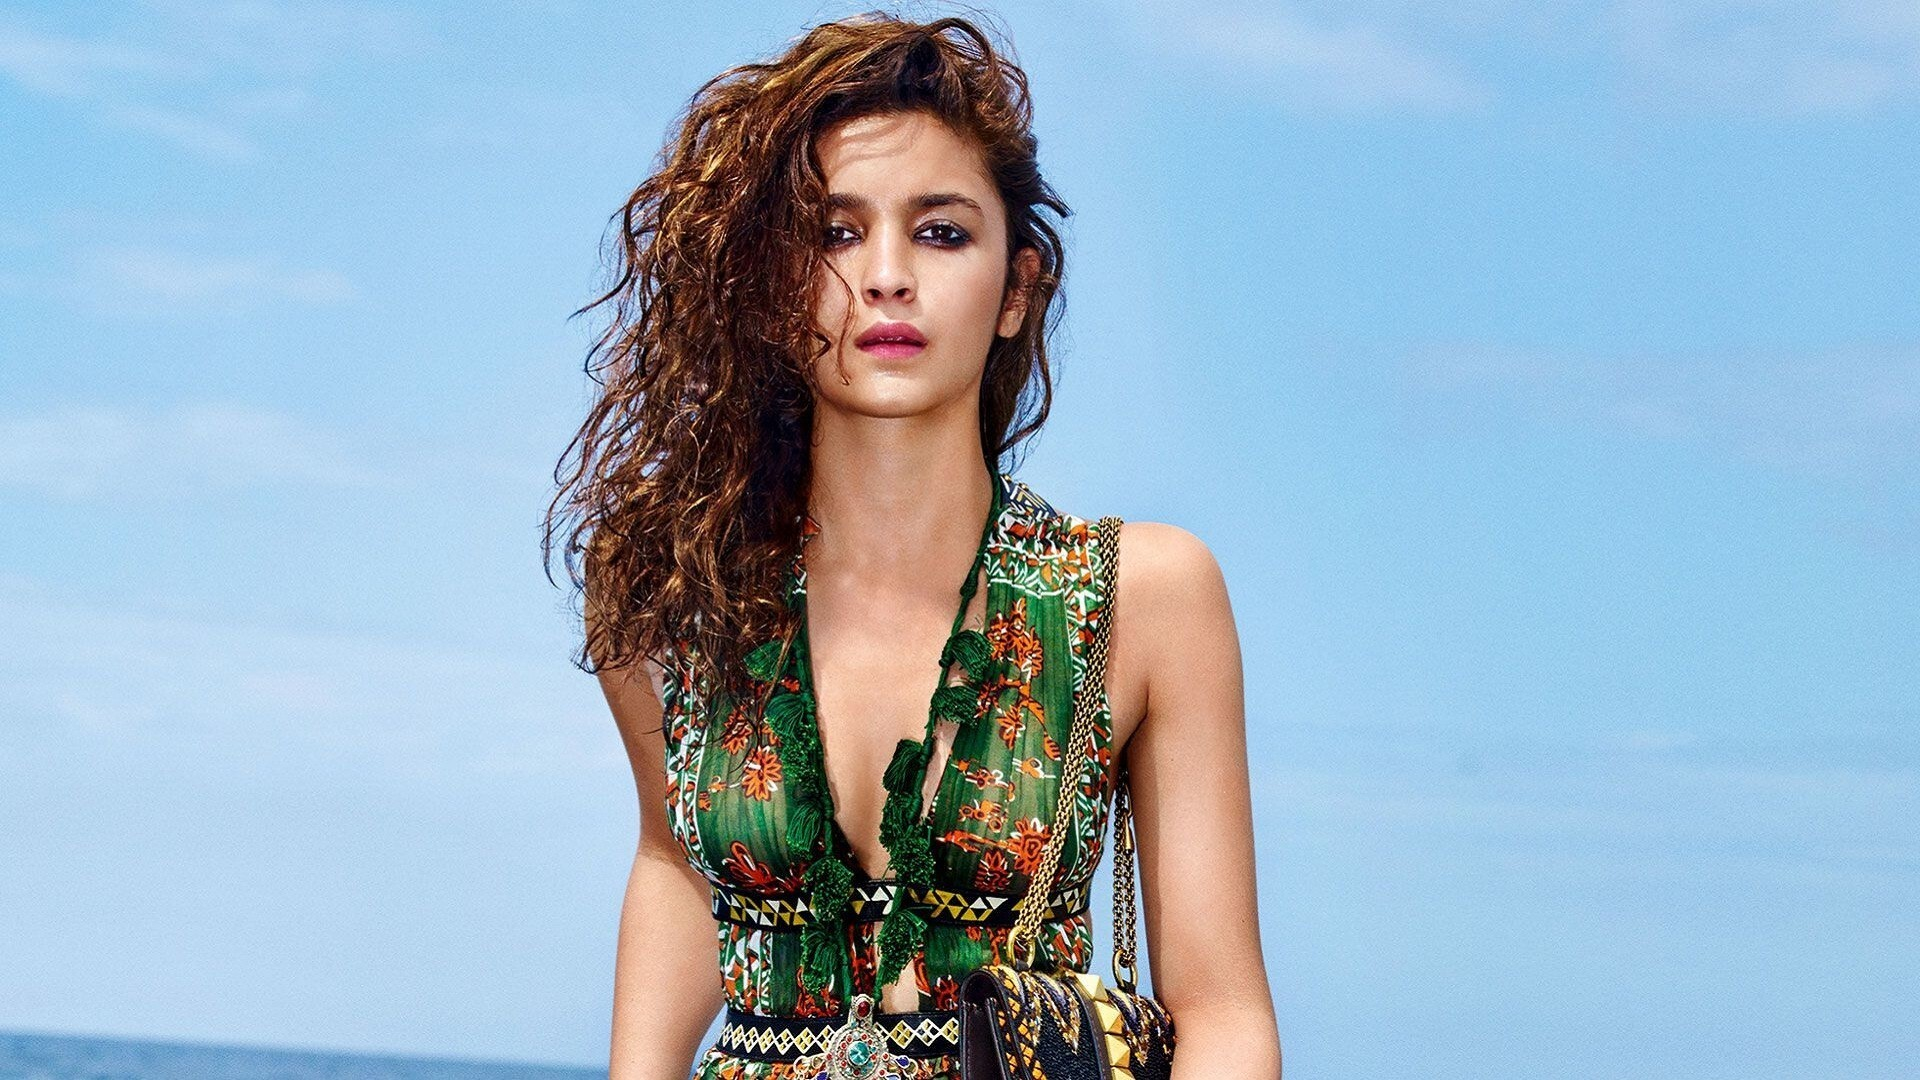 Alia_Bhatt_Bollywood_Actress_HD_Images Here are Top 5 celebrities in Bollywood who are followed on social media for fashion.